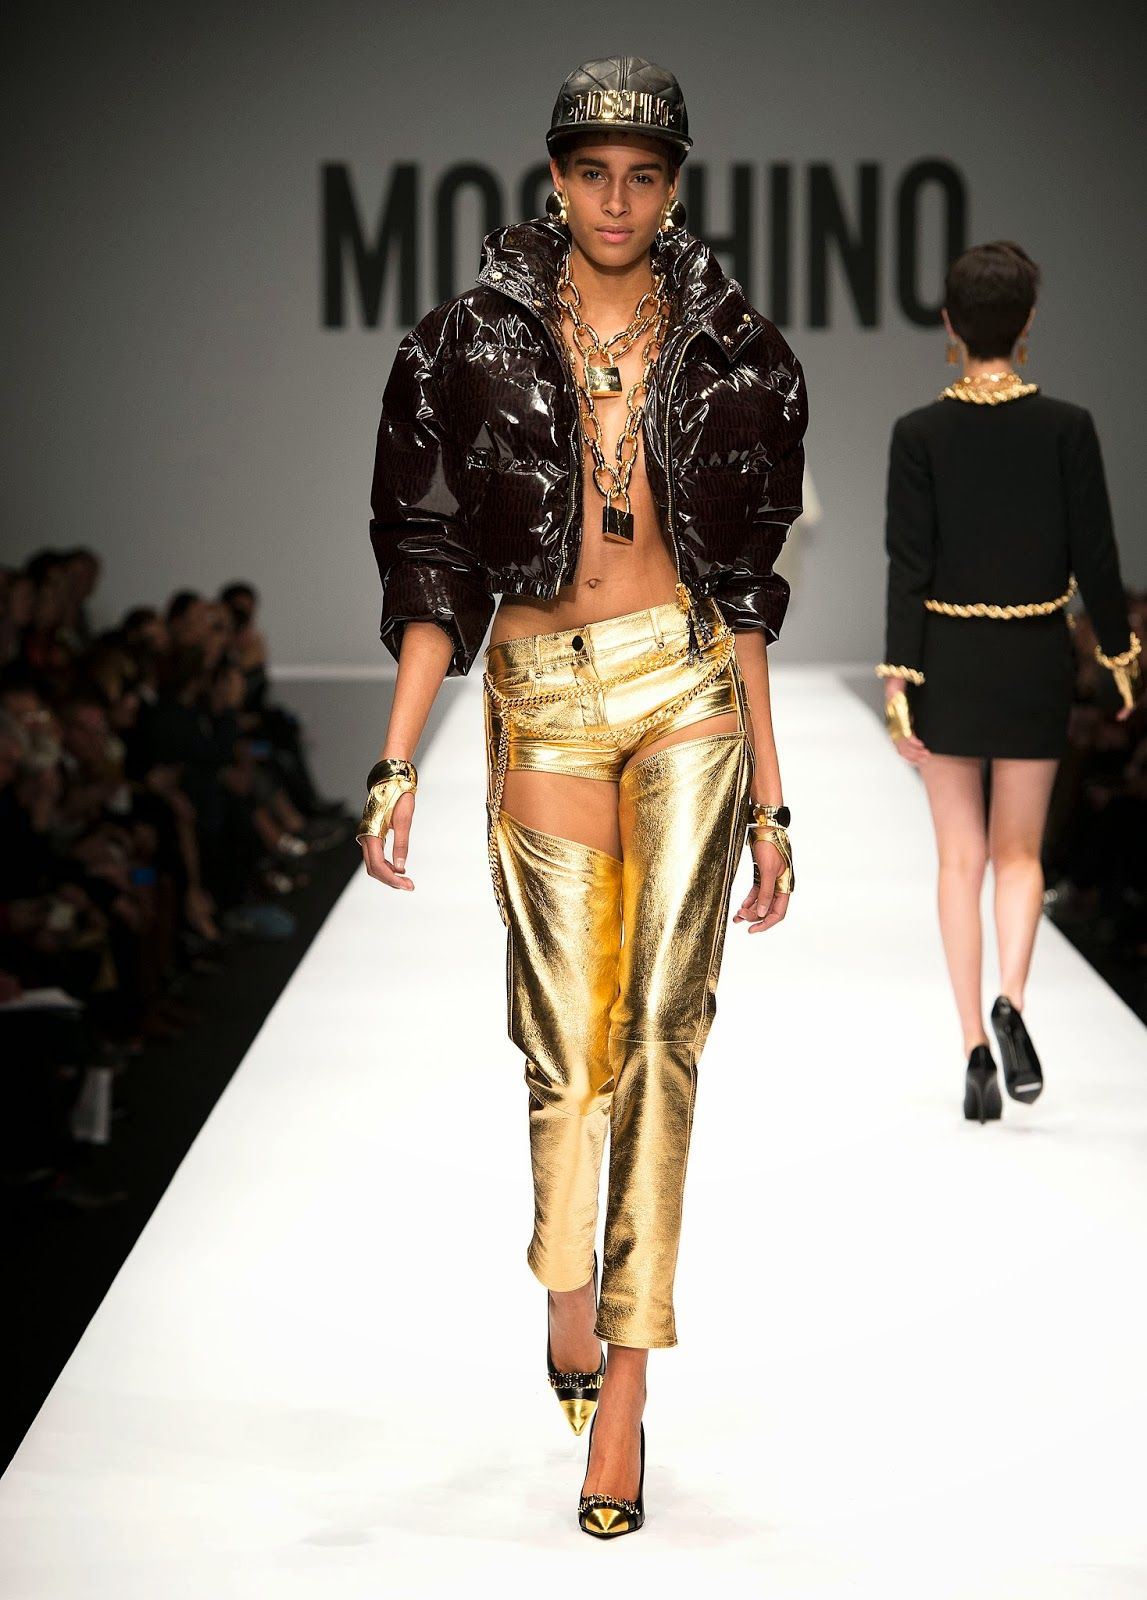 Moschino Fall Winter 2014-15 by Jeremy Scott - Travel and Fashion Tips by Anna P.